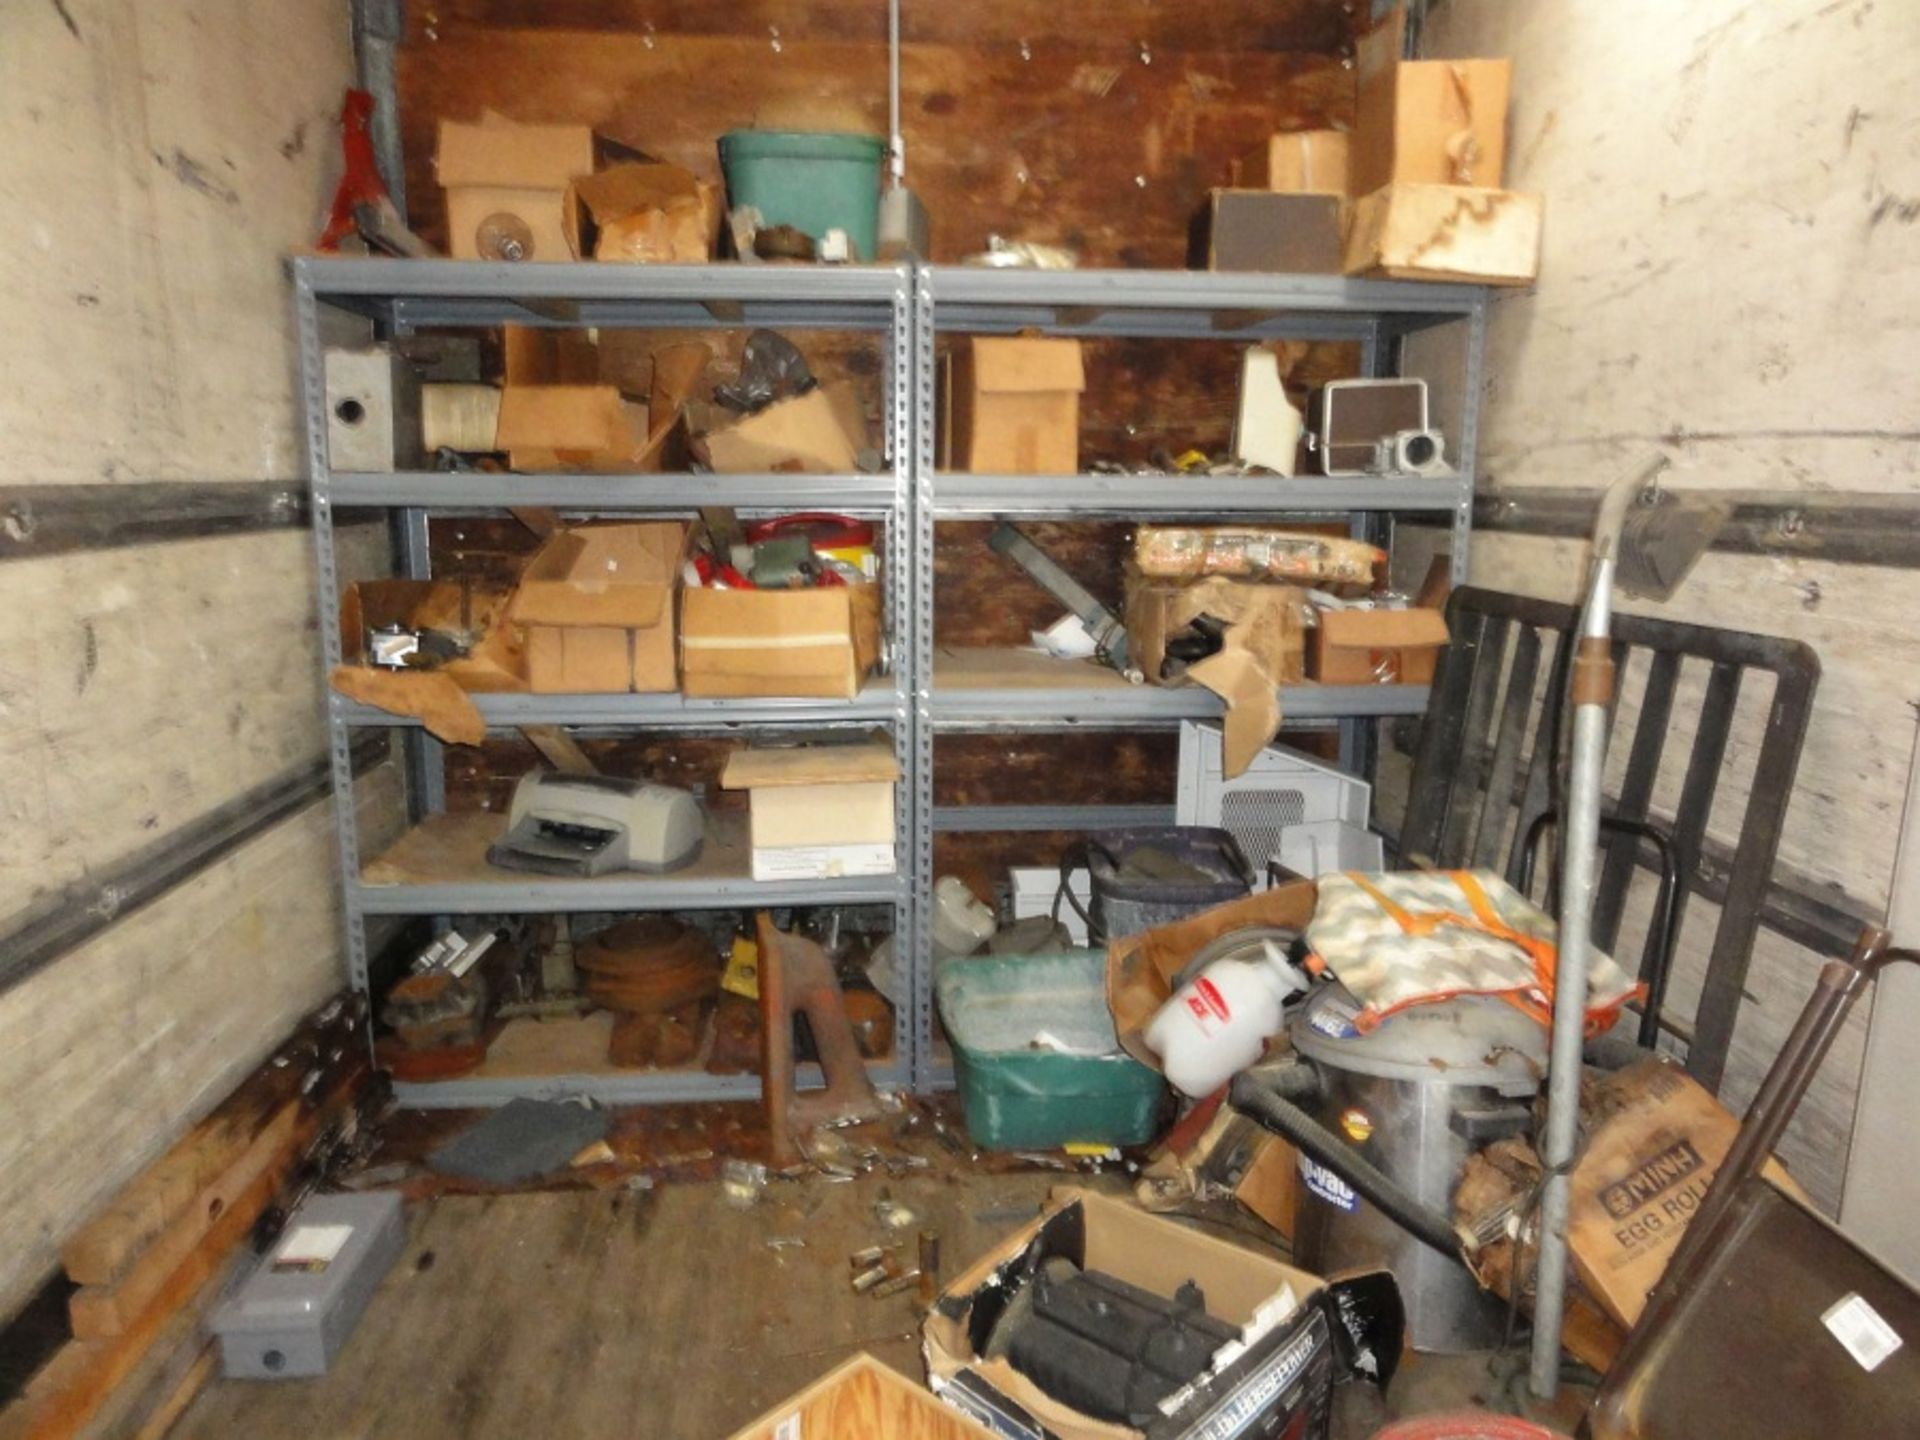 Lot 234 - Contents of Building